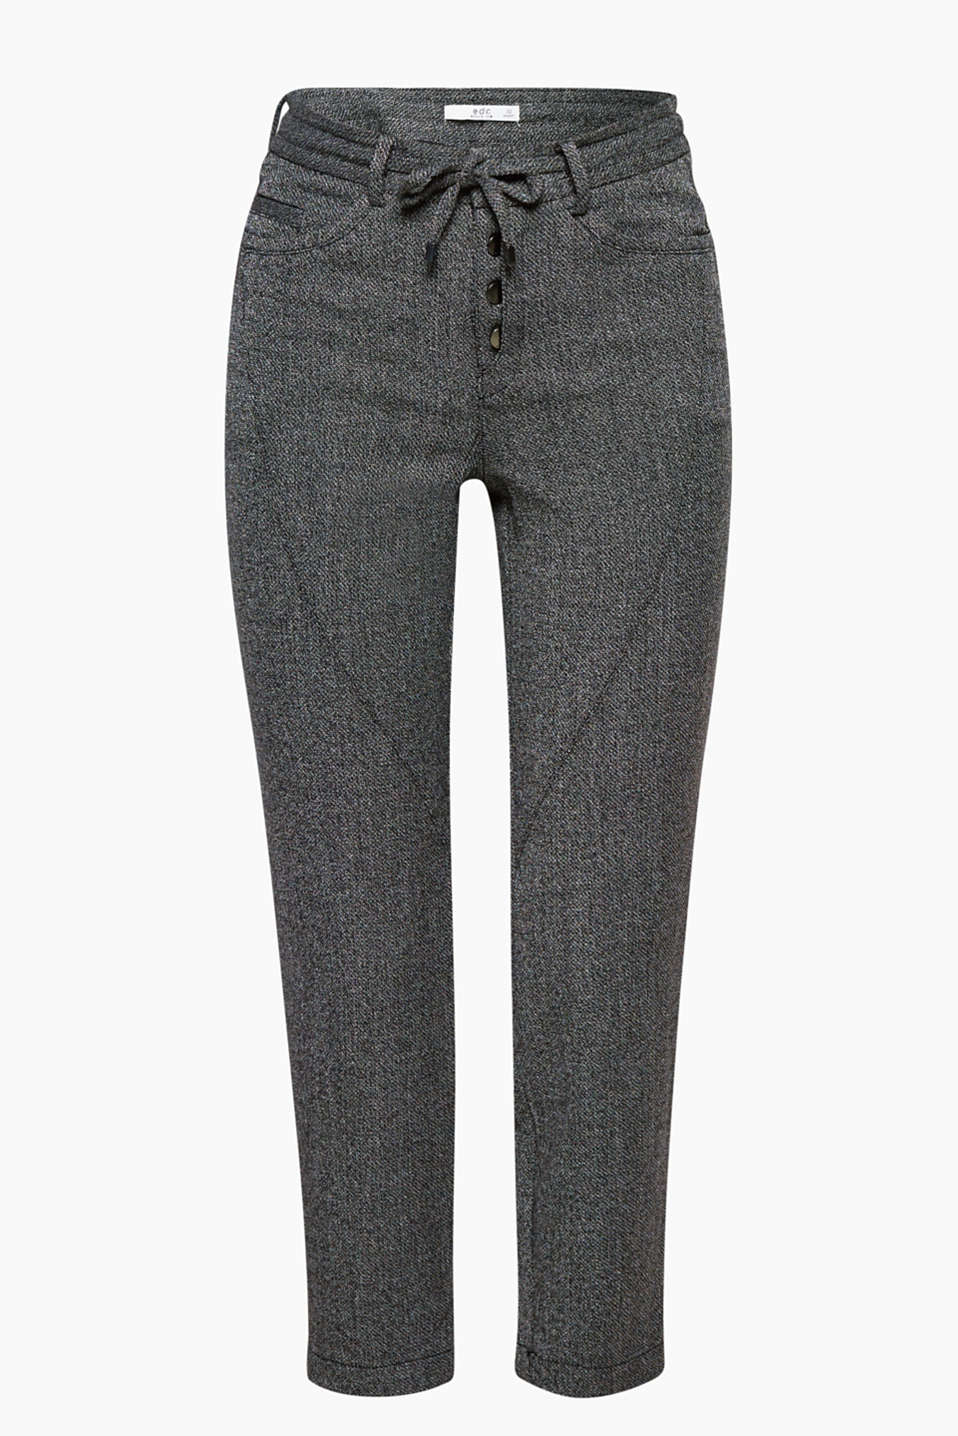 Comfortable and versatile: cropped trousers with a half-visible button placket and a salt and pepper look.